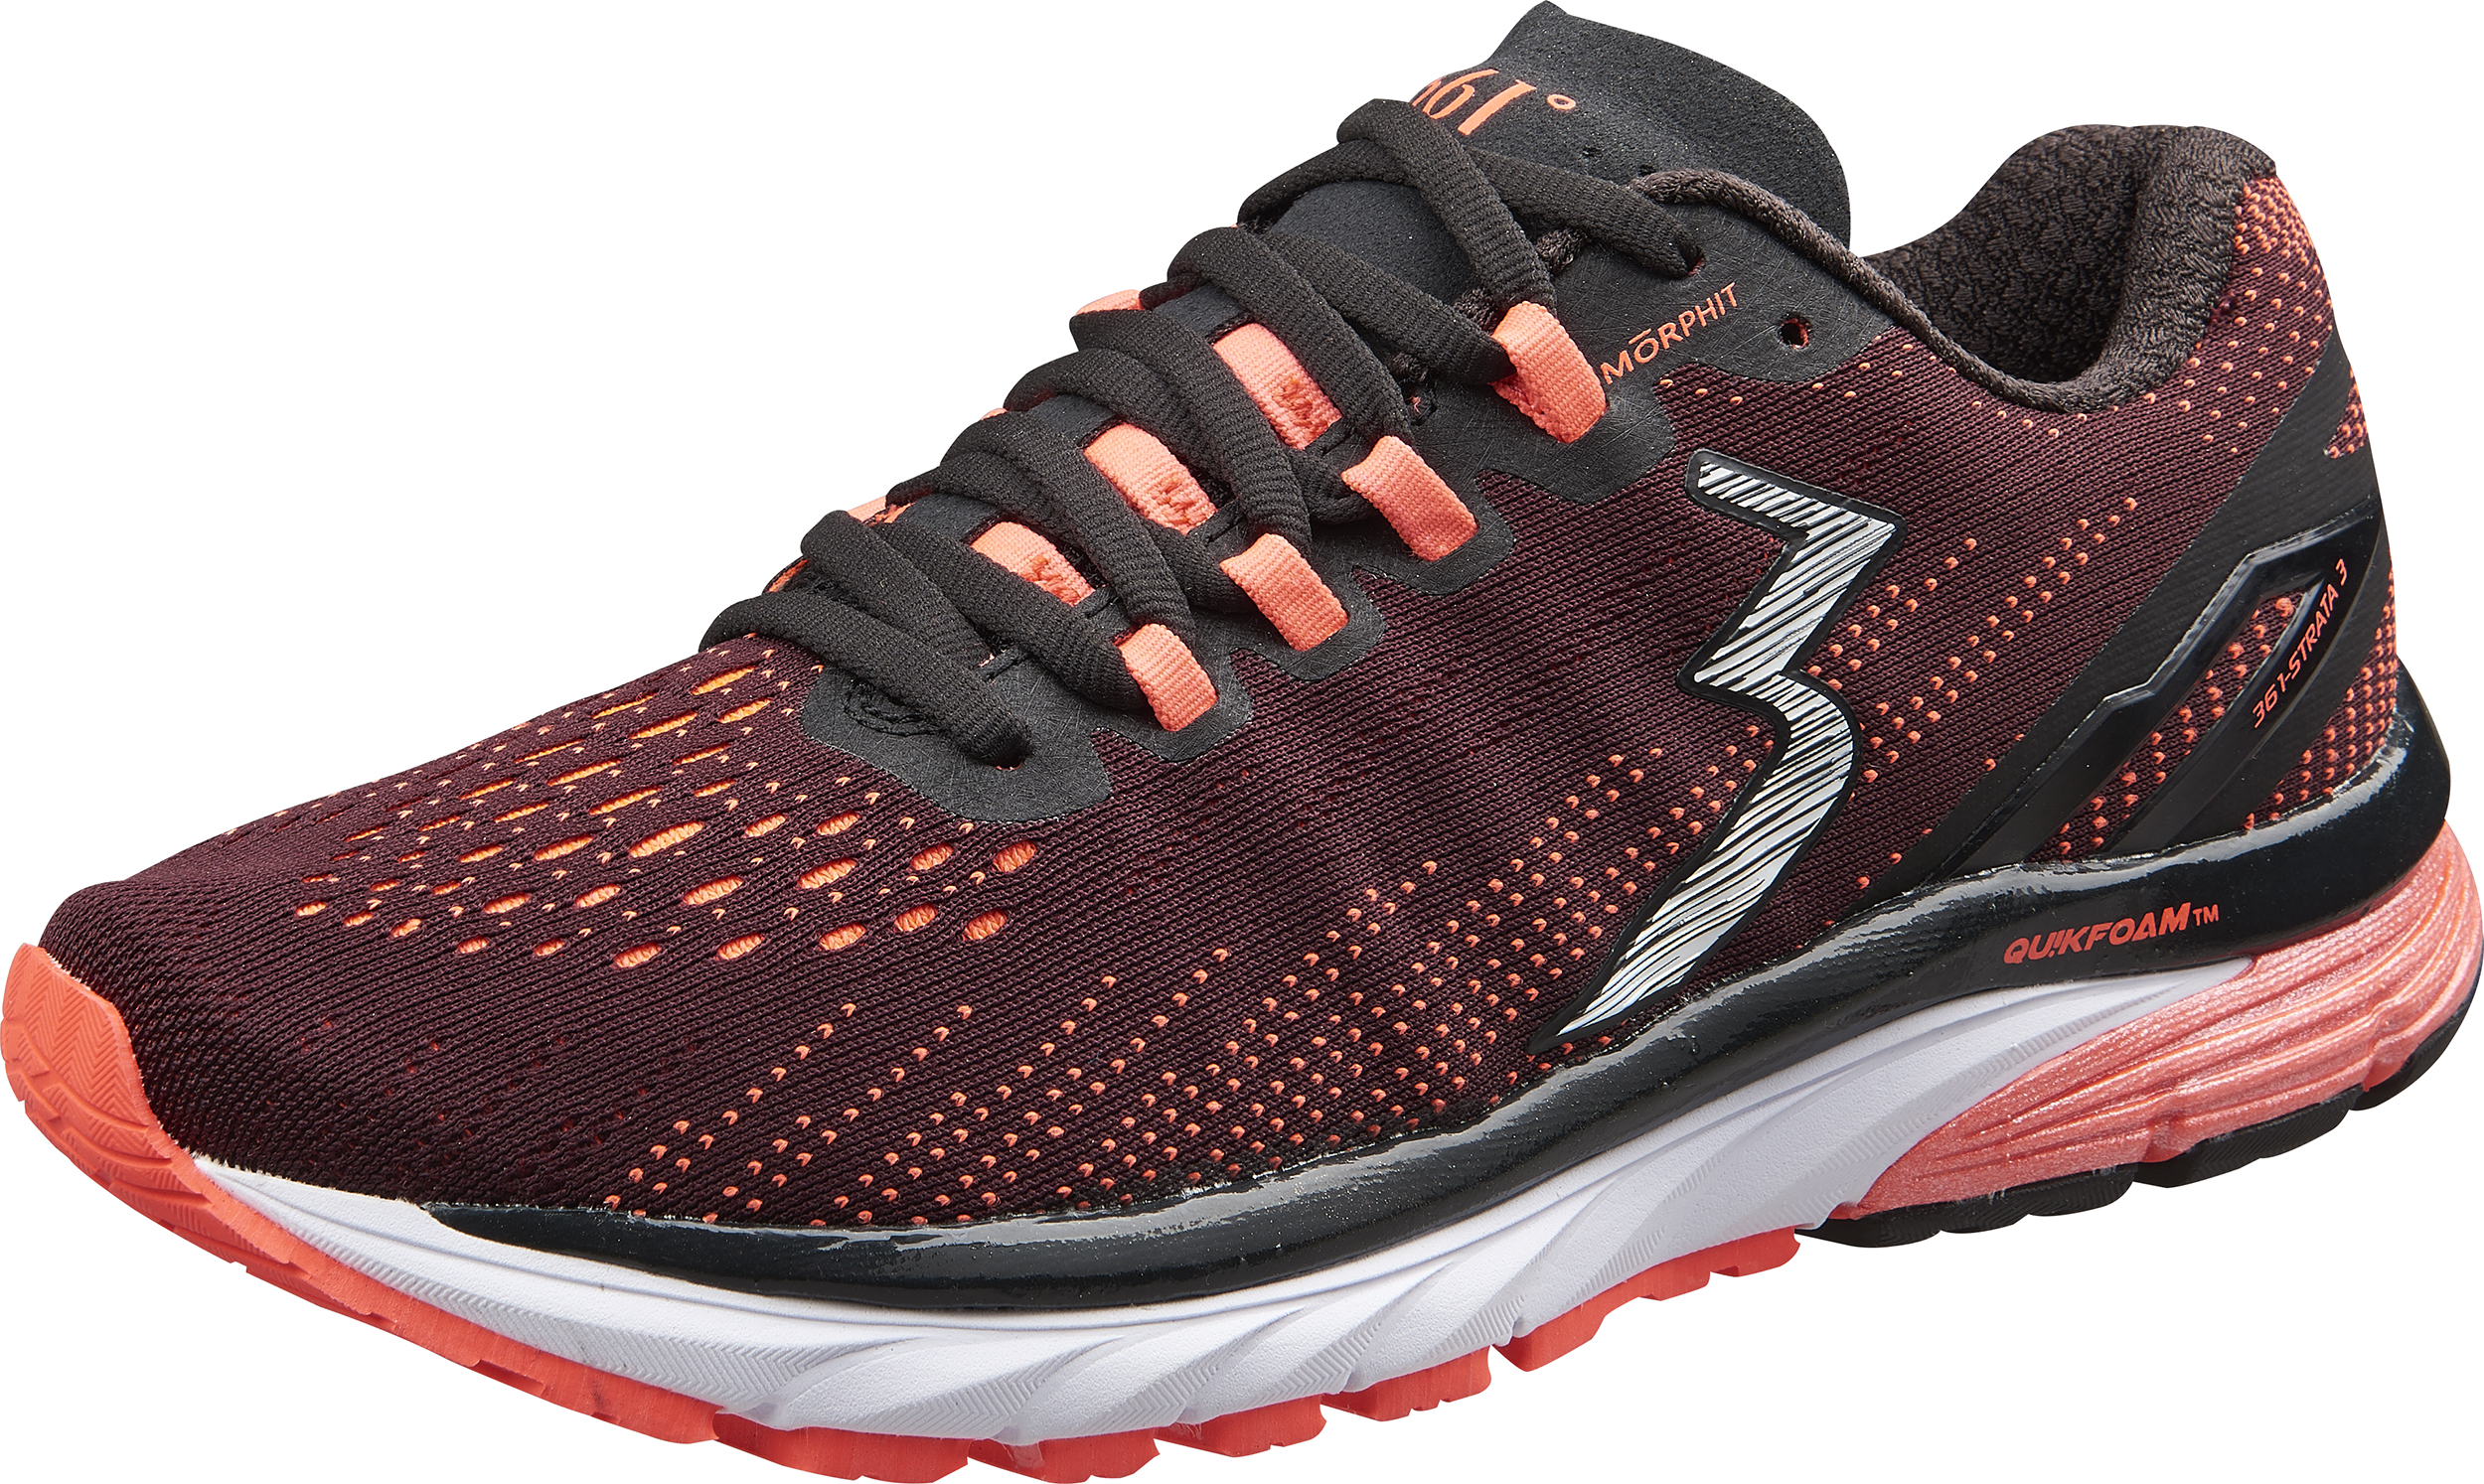 361 Degrees Strata 3 Road Running Shoes